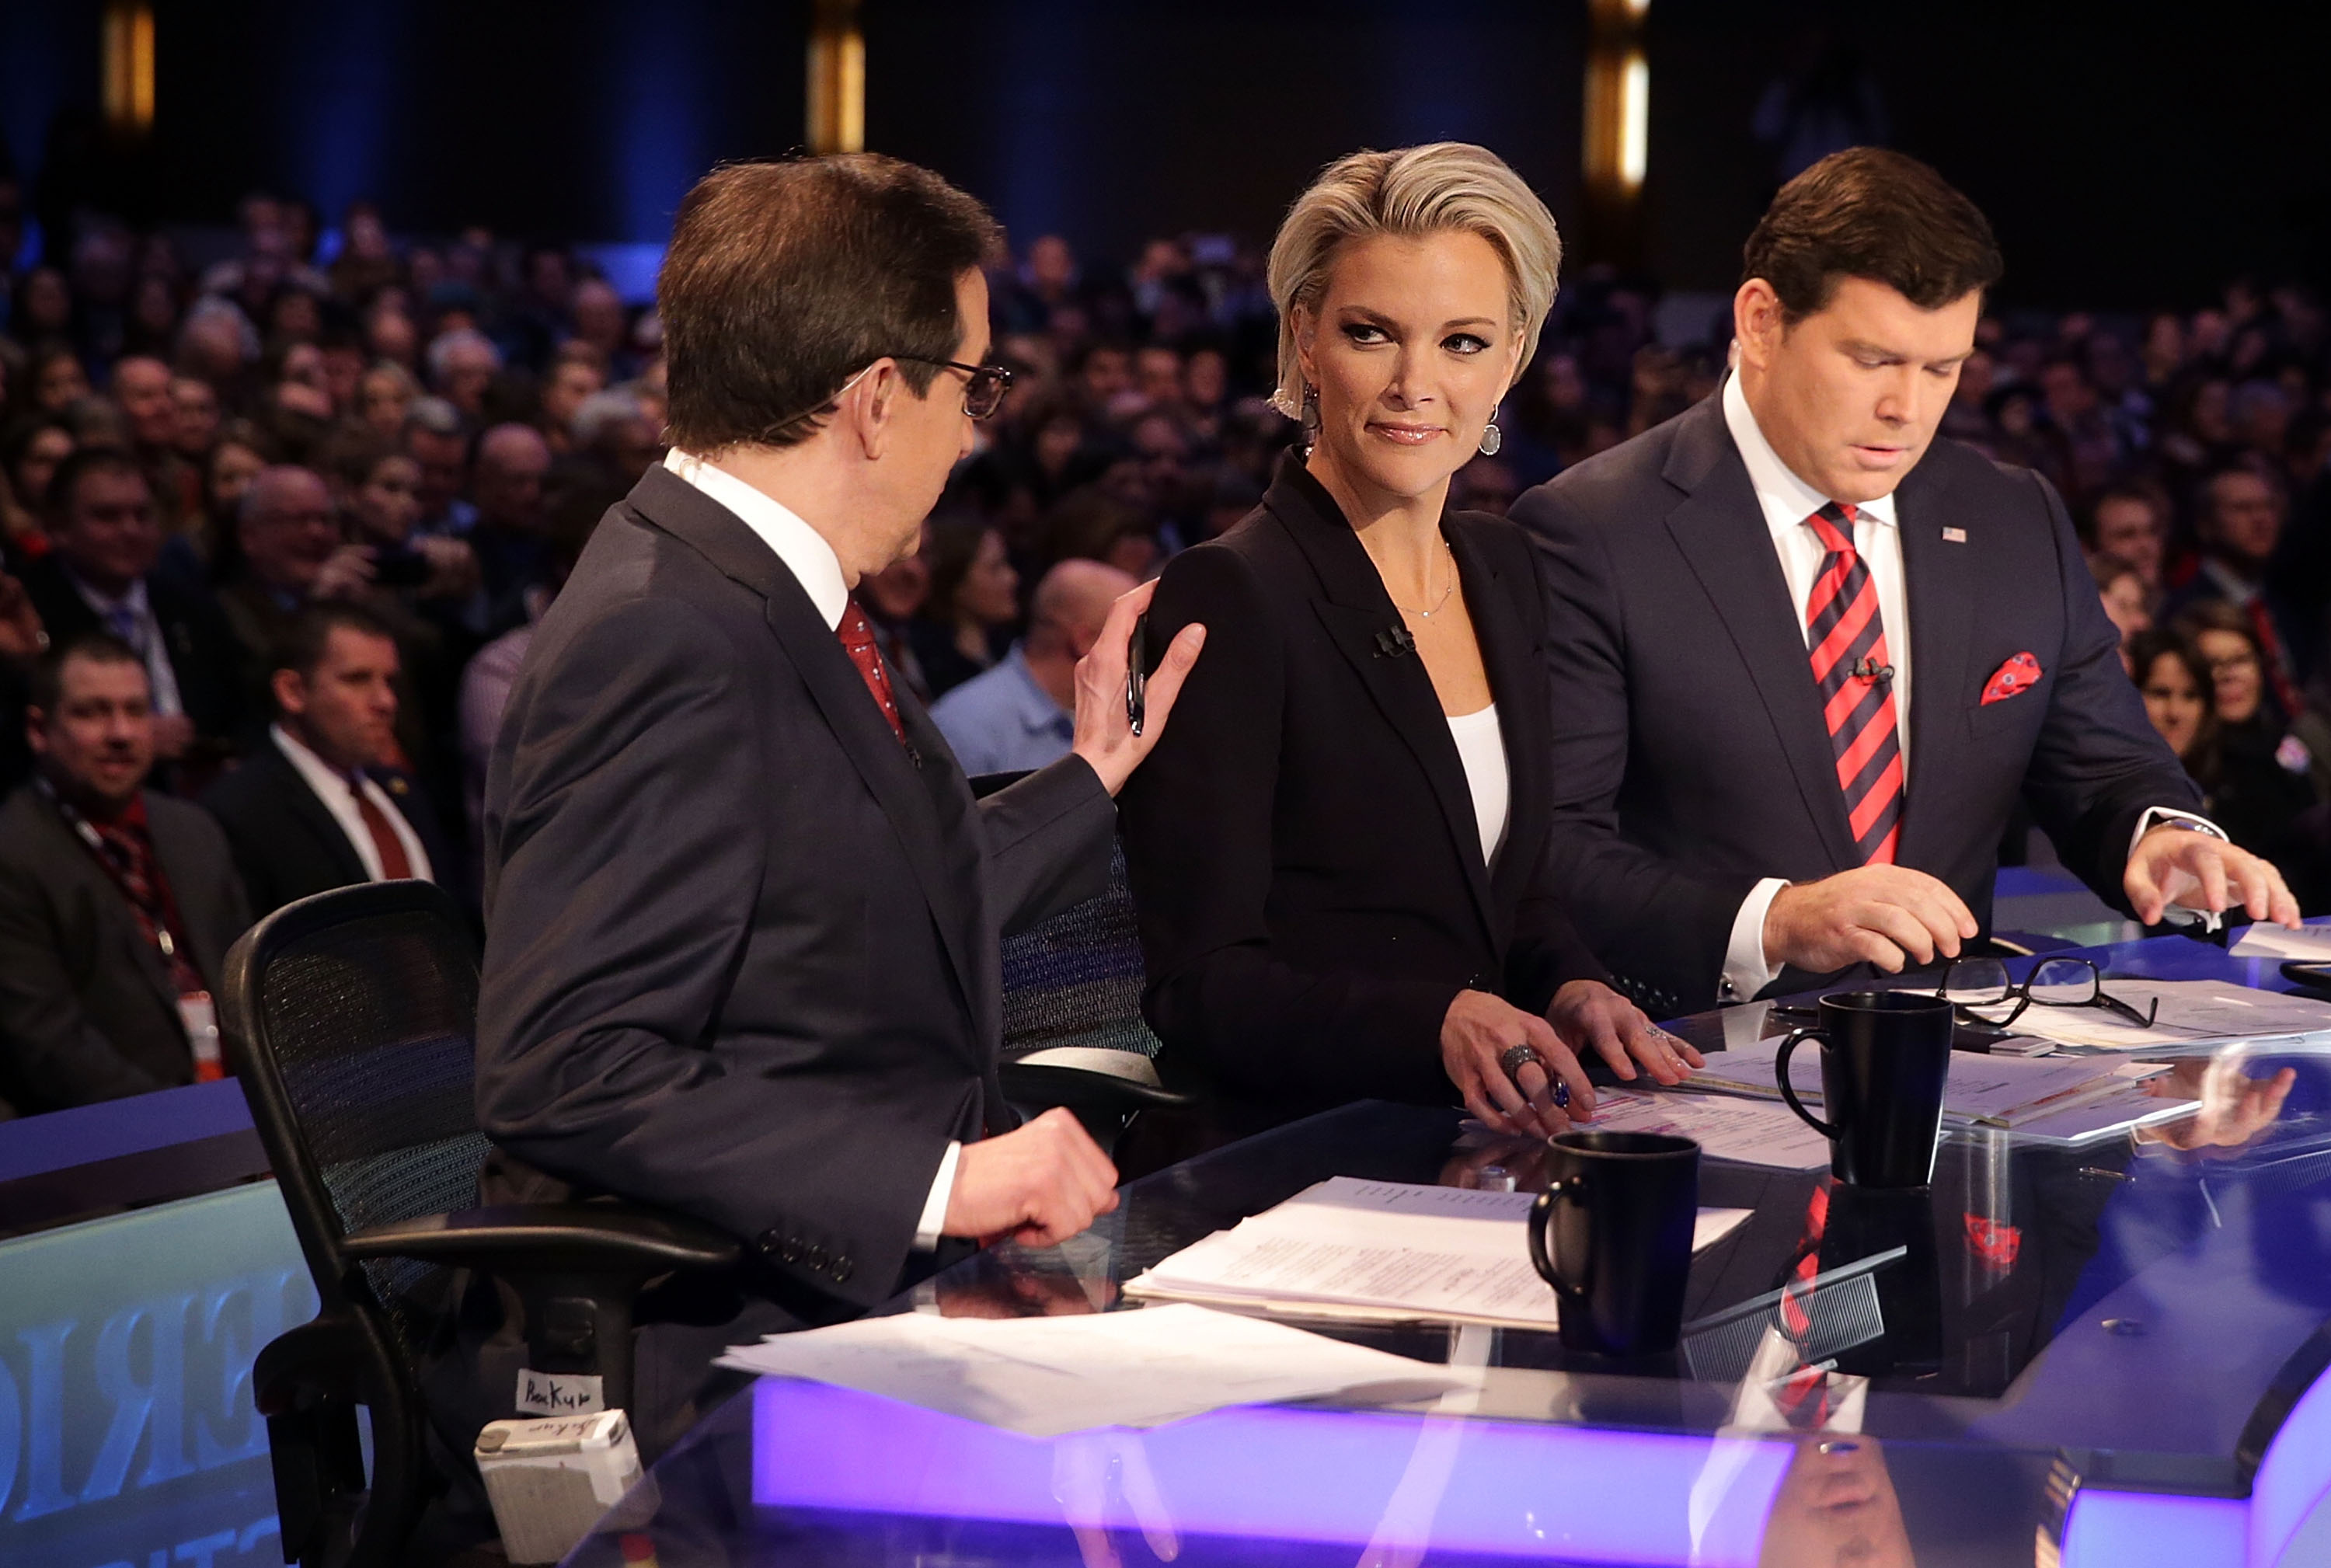 The Fox News debate showed how Republicans created the Trump problem now destroying them